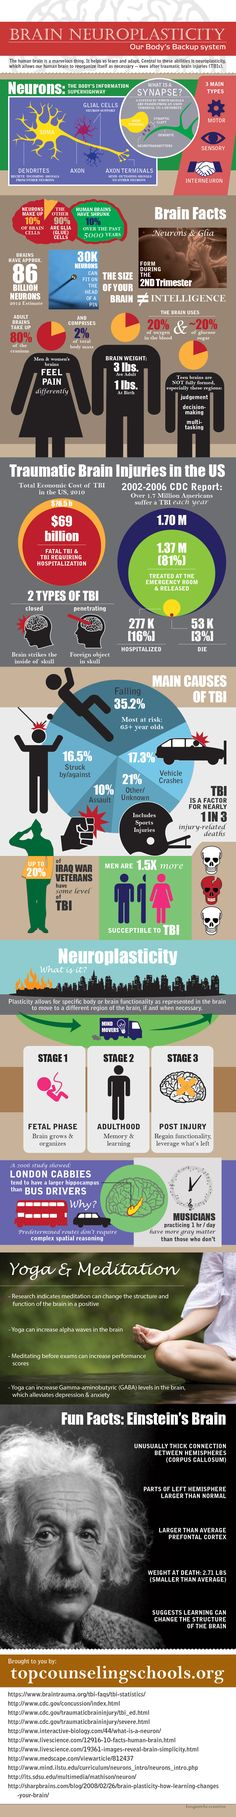 LEARN MORE ABOUT NEUROPLASTICITY AND TRAUMATIC BRAIN INJURY WITH THIS INFOGRAPHIC